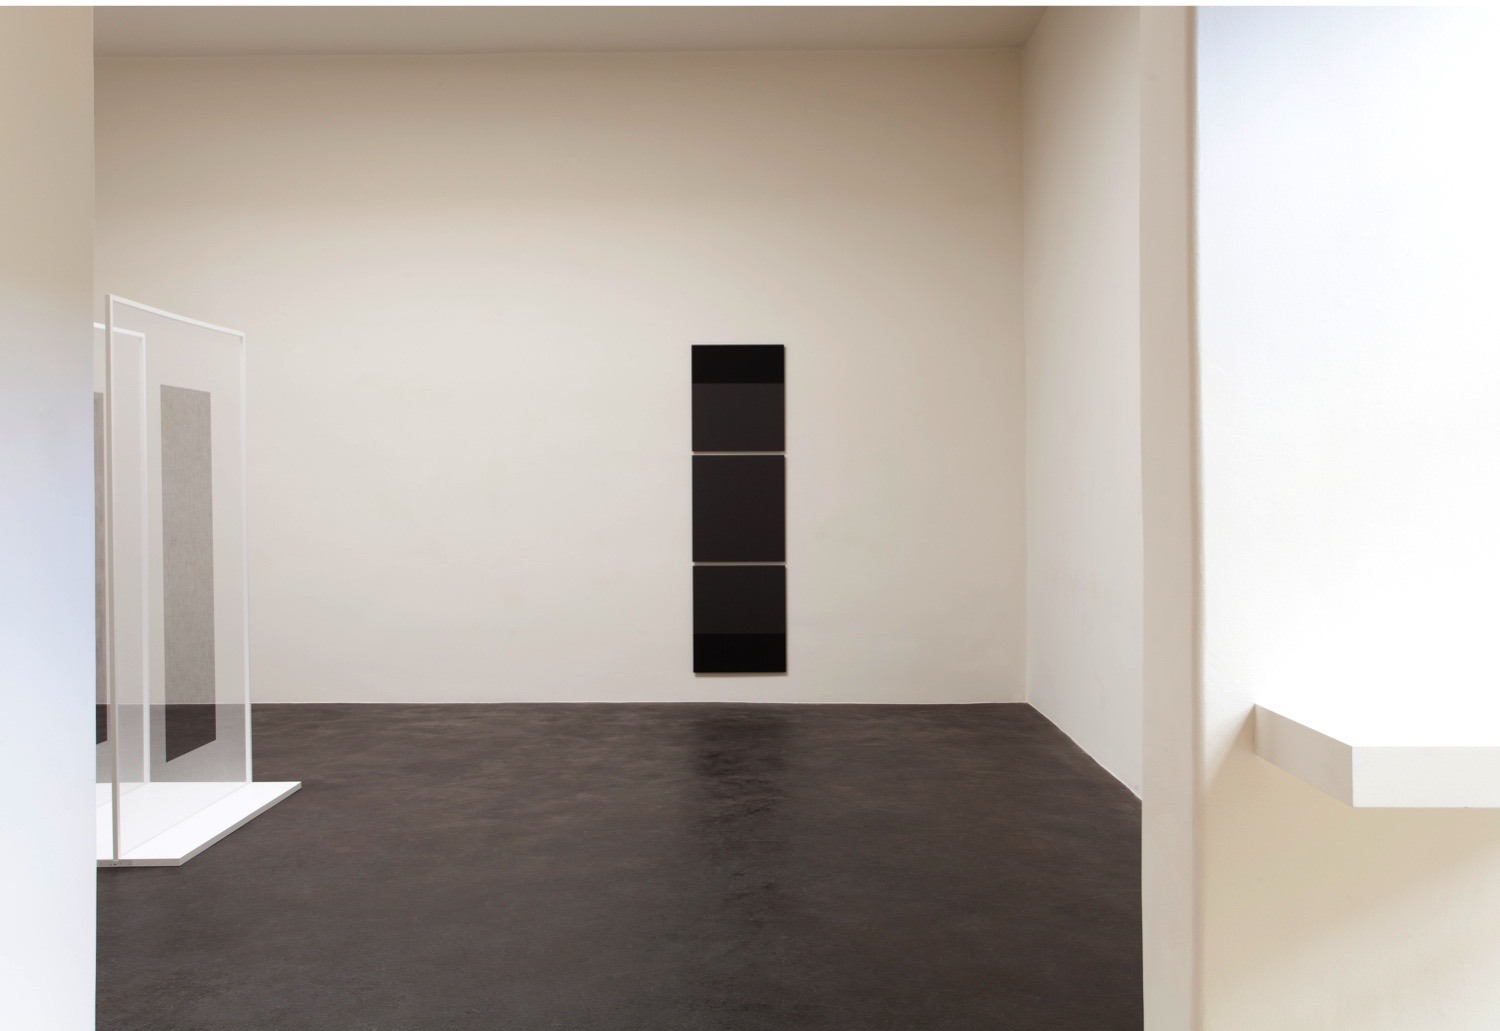 Hadi Tabatabai: To Find Rest, installation views Lannan Foundation. Photo: Addison Doty